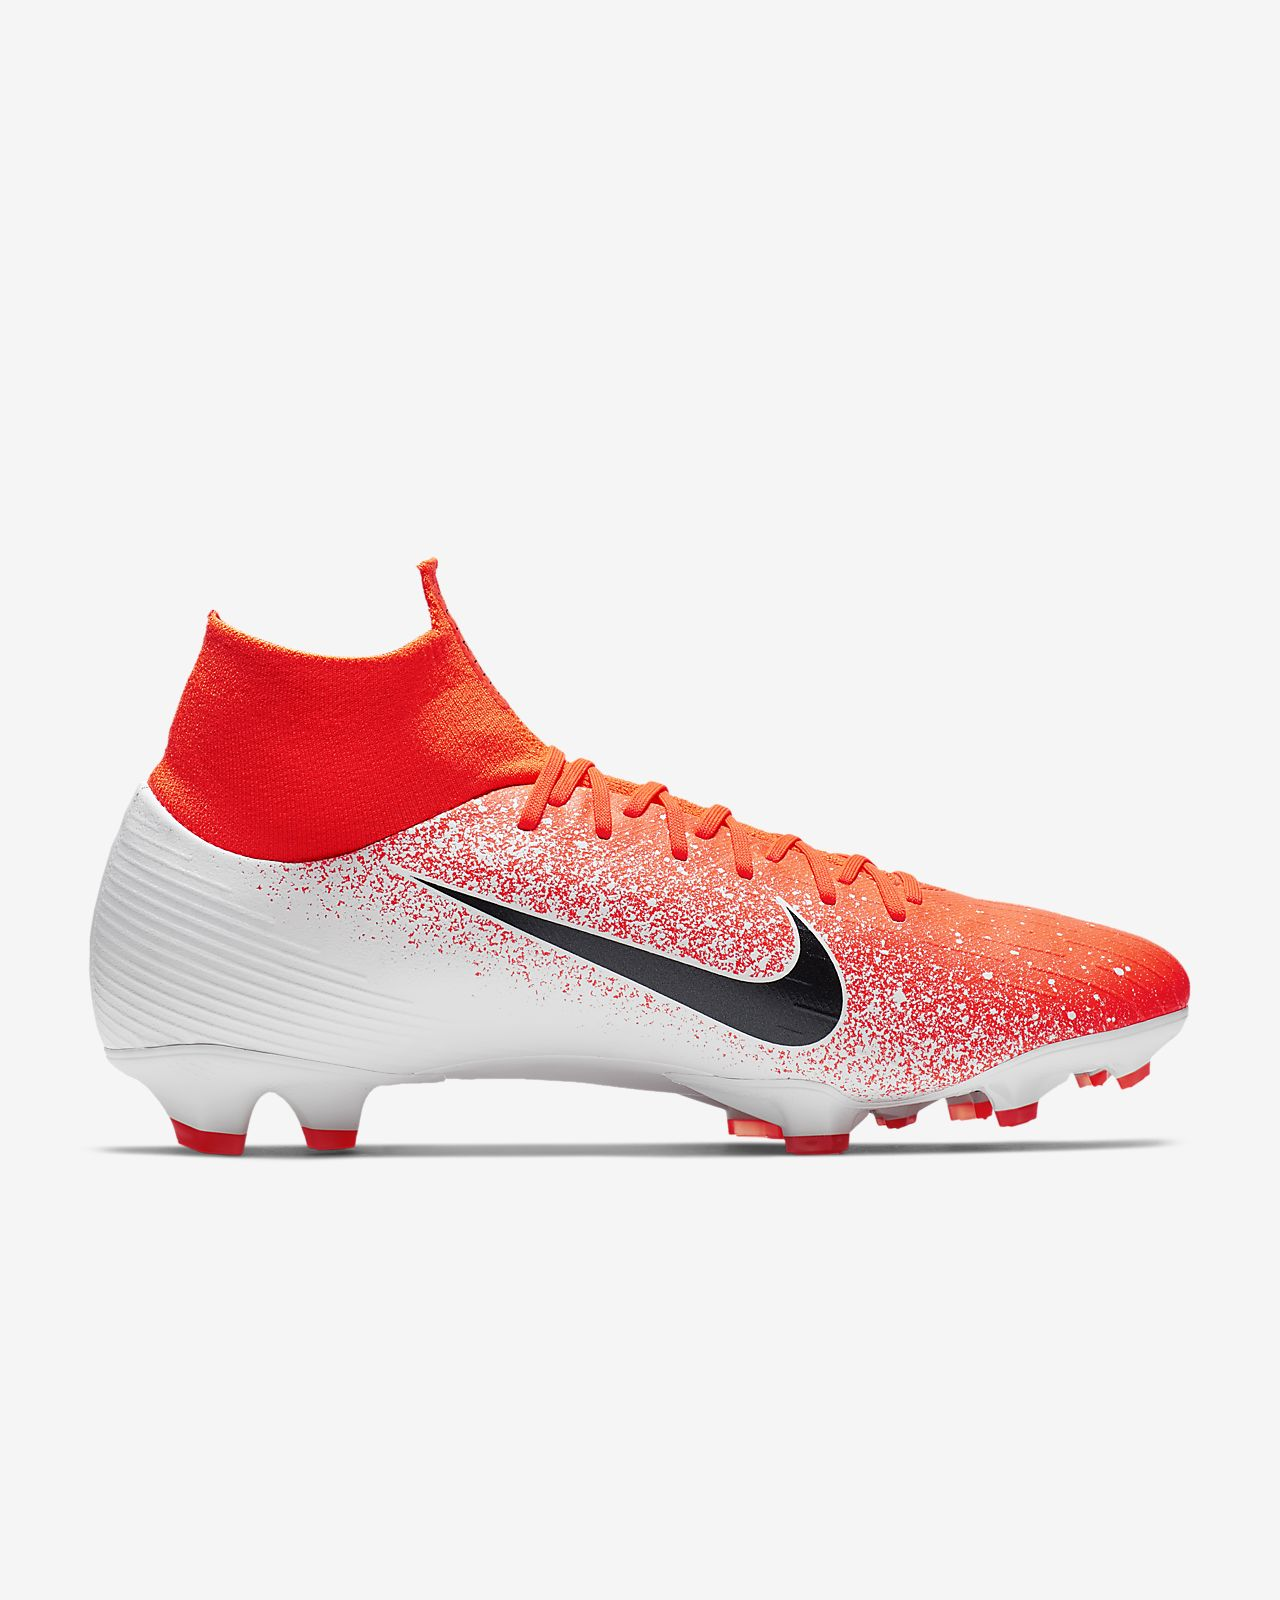 30d48520c Nike Superfly 6 Pro FG Firm-Ground Soccer Cleat . Nike.com